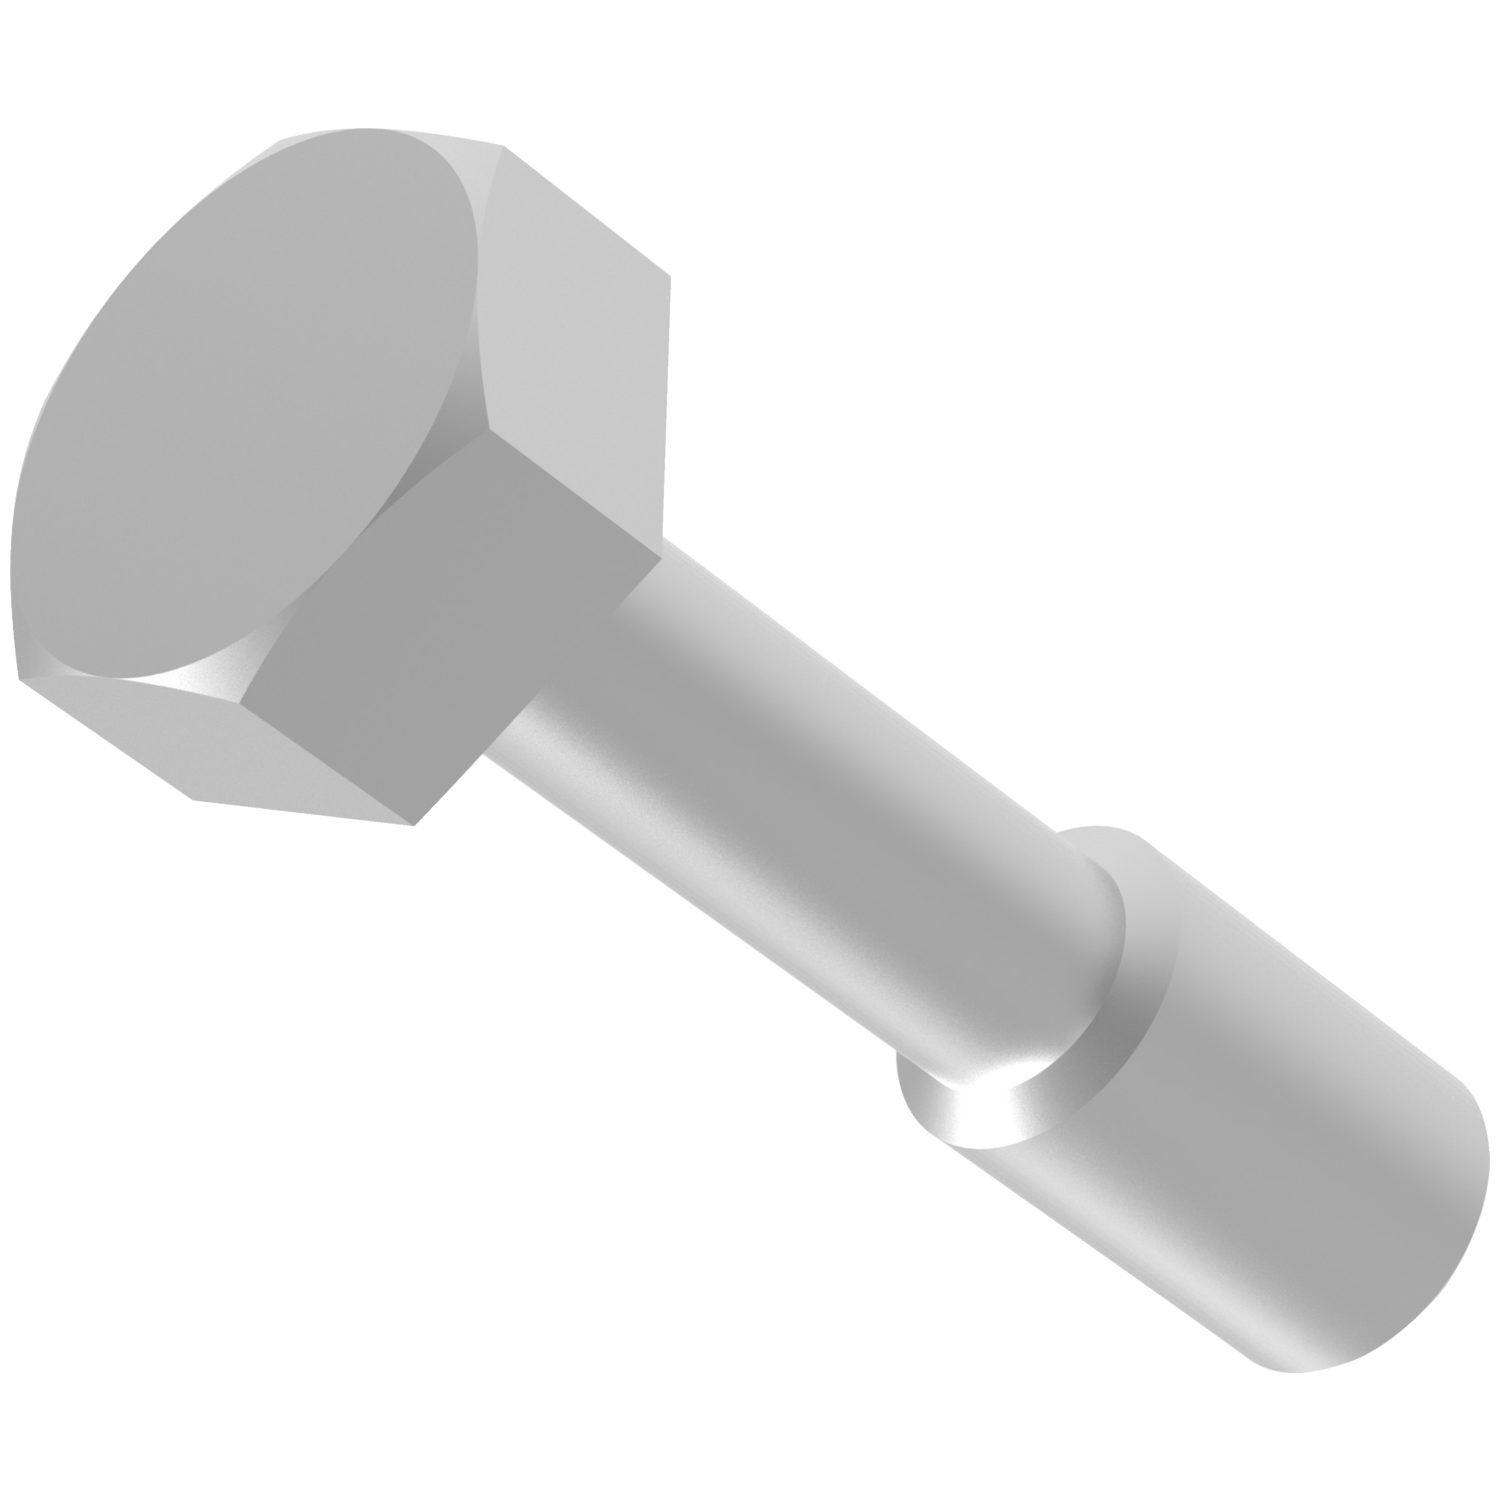 P0158 - Captive Hex Bolts